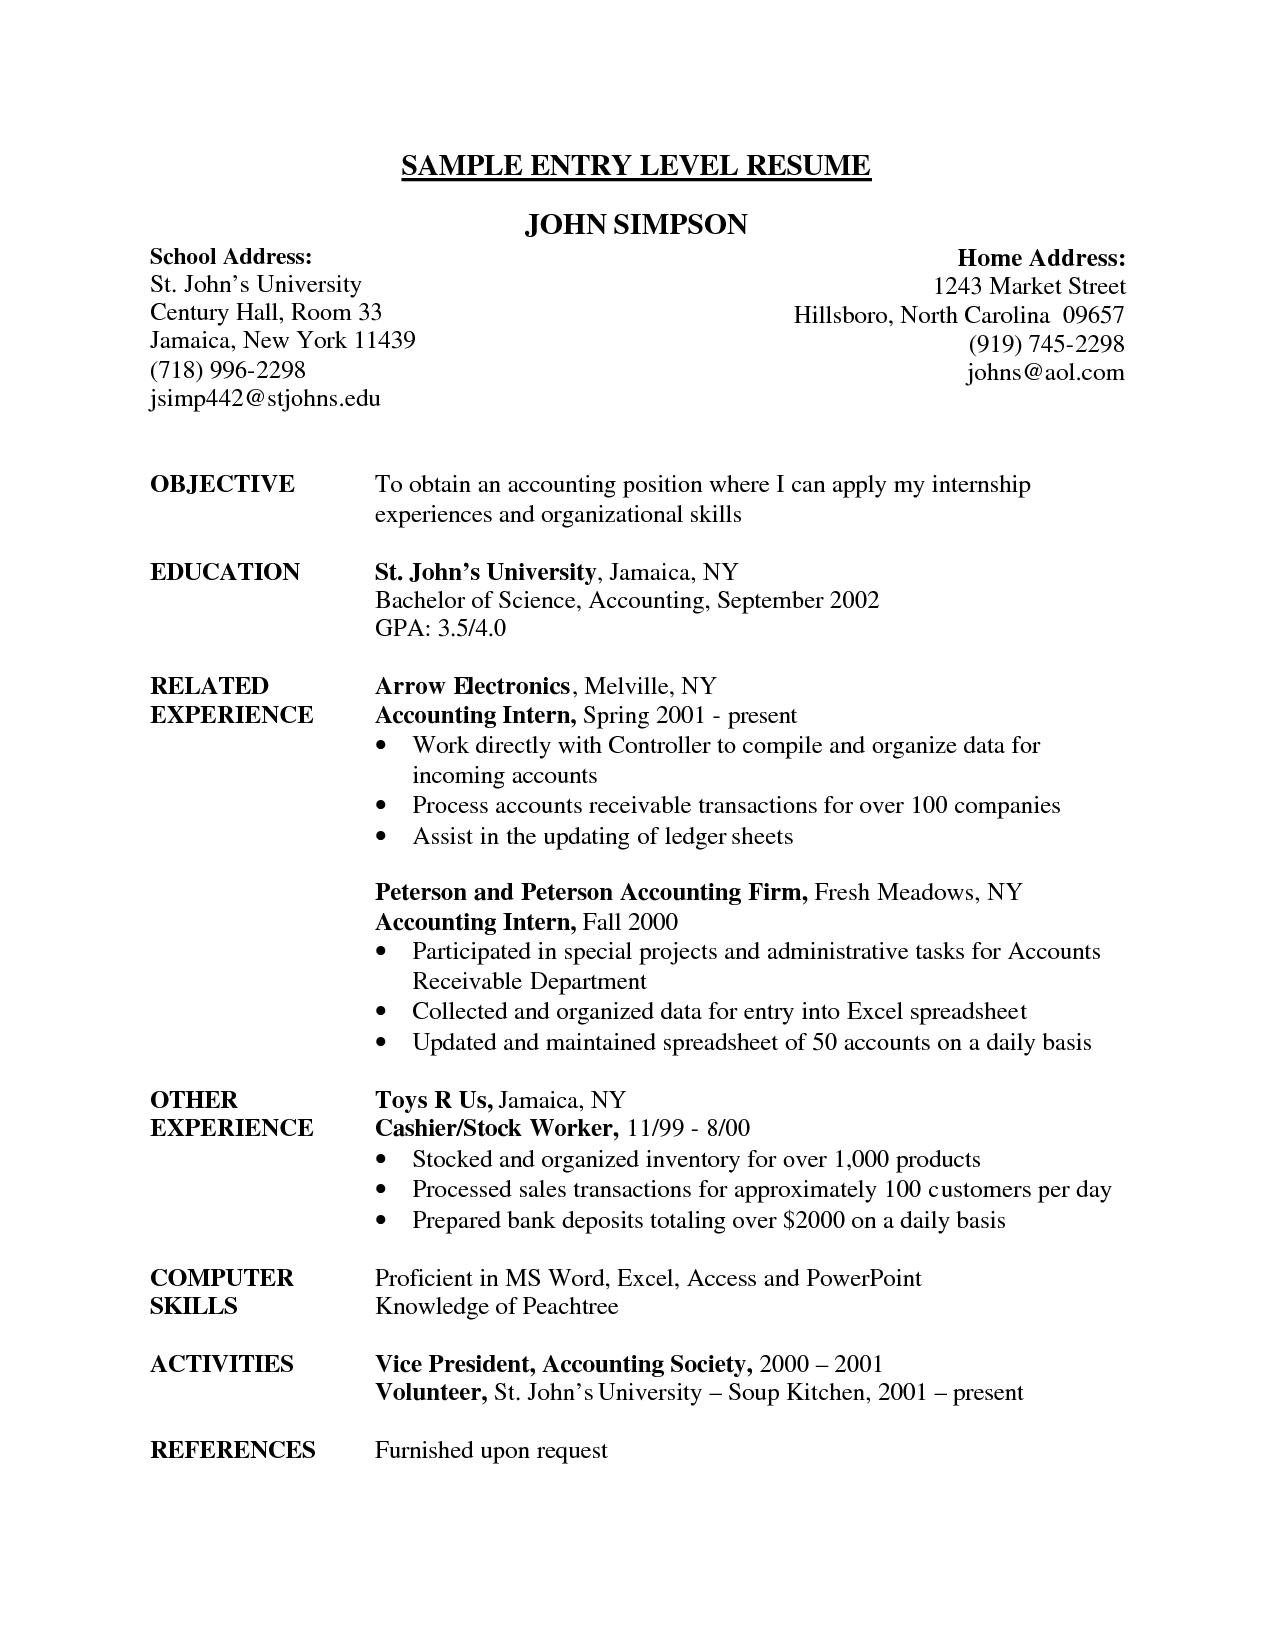 Resume Objectives General Resume Templates On Word Resume Template Resume  Objectives For General Job General Resume  Resume Sample Objectives